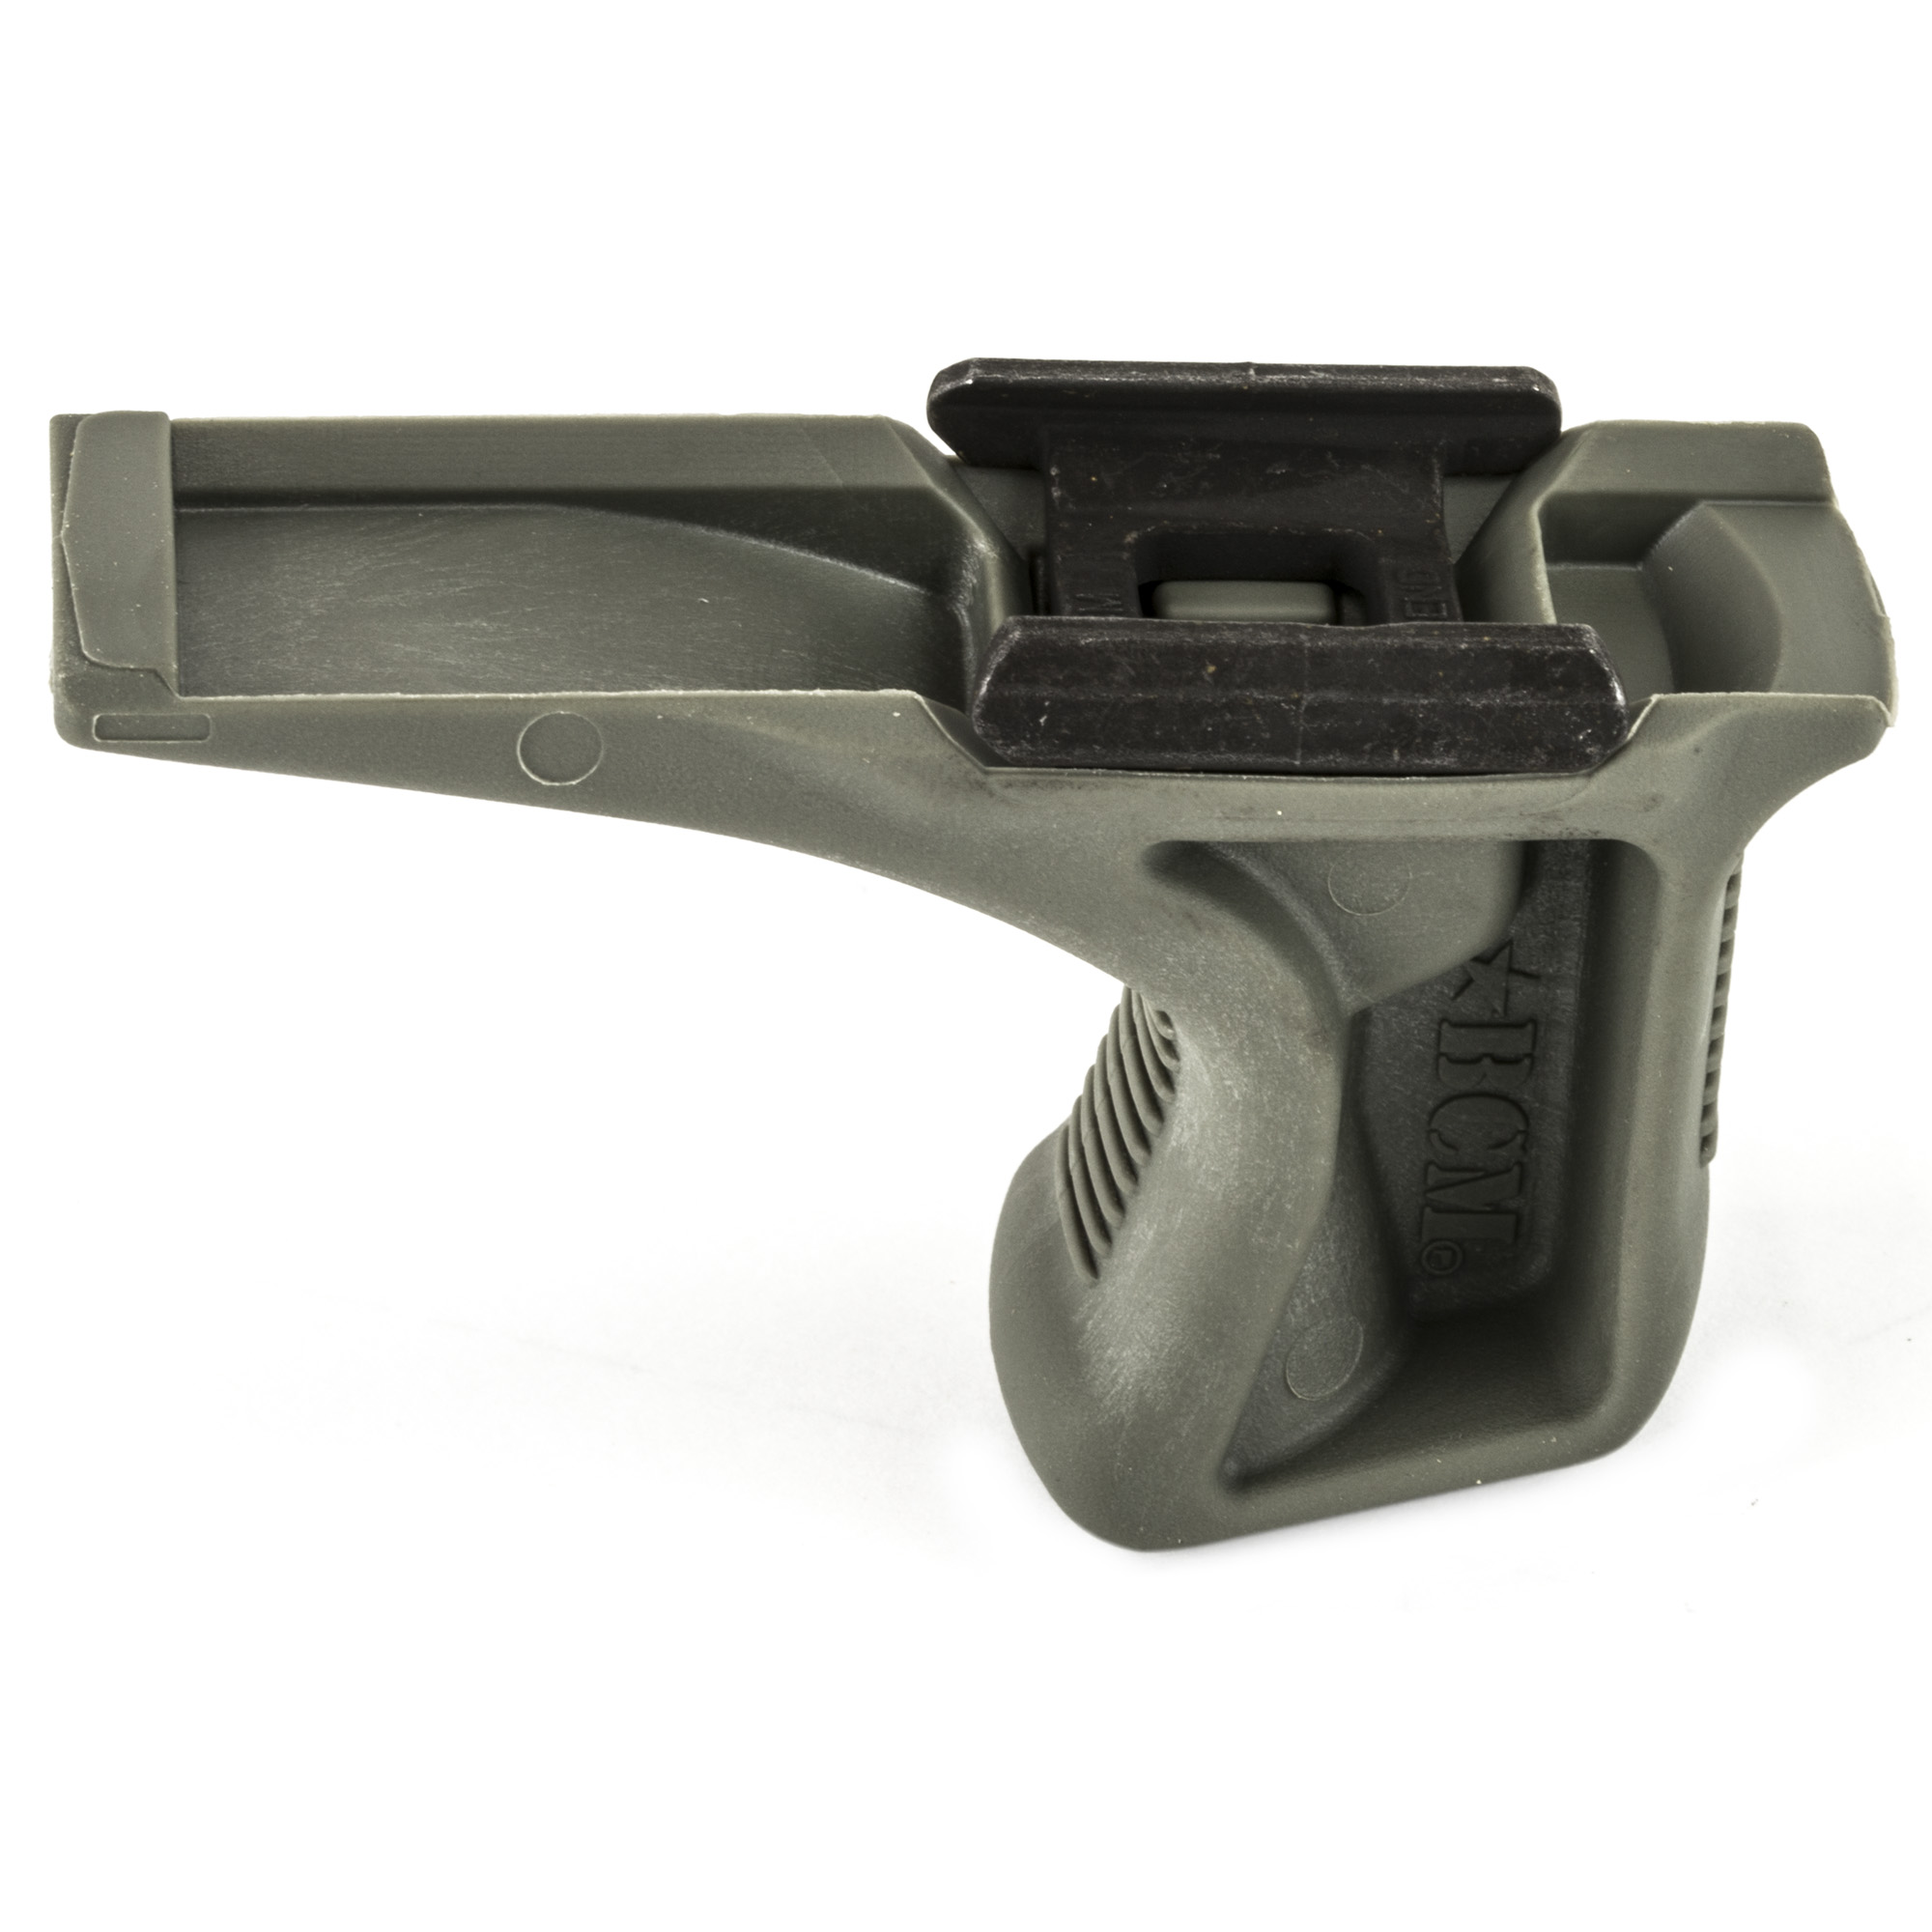 """Bravo Company's BCMGUNFIGHTER KAG-1913 Kinesthetic Angled Grip"""" Picatinny 1913 Rail Version"""" is the end result of collaboration between BCM(R) and Travis Haley"""" founder of Haley Strategic Partners and inventor of multiple weapons manipulation enhancements in the firearms industry.Designed to complement modern shooting grips"""" the Kinesthetic Angled Grip (KAG) uses a biomechanically efficient forward rake to create an interface for positive retention and joint relief to the wrist"""" elbow"""" and shoulder"""" allowing for smooth weapon manipulation without substantial increase to the girth of the weapon system. Textured on both front and back"""" the profile of the KAG creates a channel for consistent and positive engagement which translates directly into improved efficiency in weapons manipulation and target to target transitions. The new Patent Pending BCM(R) Direct Mount Picatinny 1913 interface system"""" was developed to be the most rigid"""" light-weight"""" and cost effective system available for Vertical Pistol Grips and Hand Stop type accessories. BCM(R) has developed a patent pending anchor system that not only secures to the mounting surface"""" but spreads the energy and force throughout the accessory. Conventional mounting systems can allow for an increased amount of shifting and flexing of the accessory. The BCM(R) direct mount interface system reduces those issues and offers a more secure lockup"""" eliminating play in the mounting surface."""